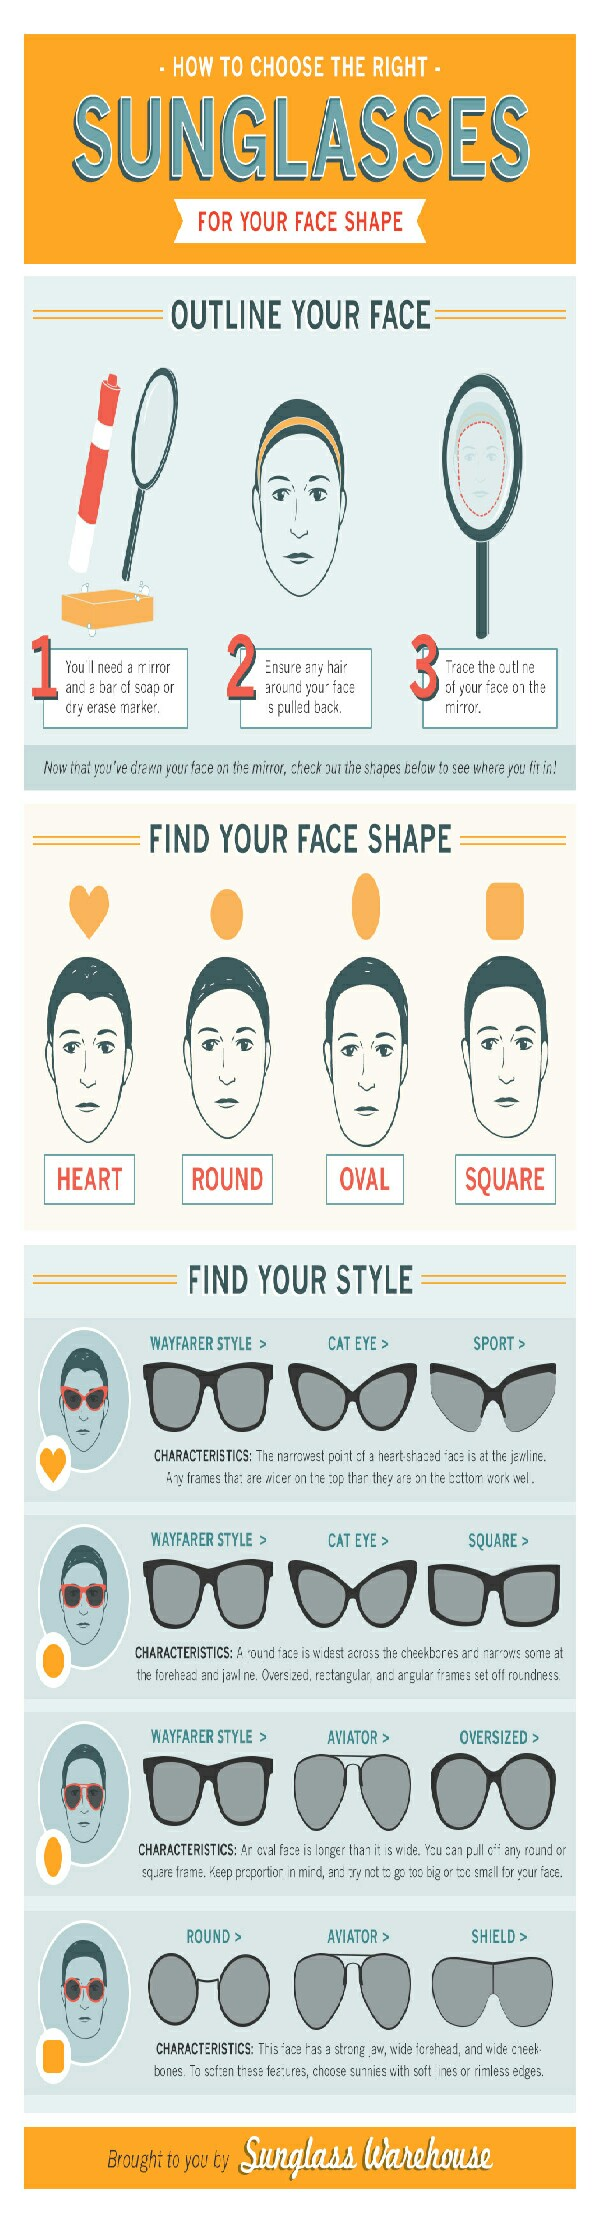 How to choose the right sunglasses for you.